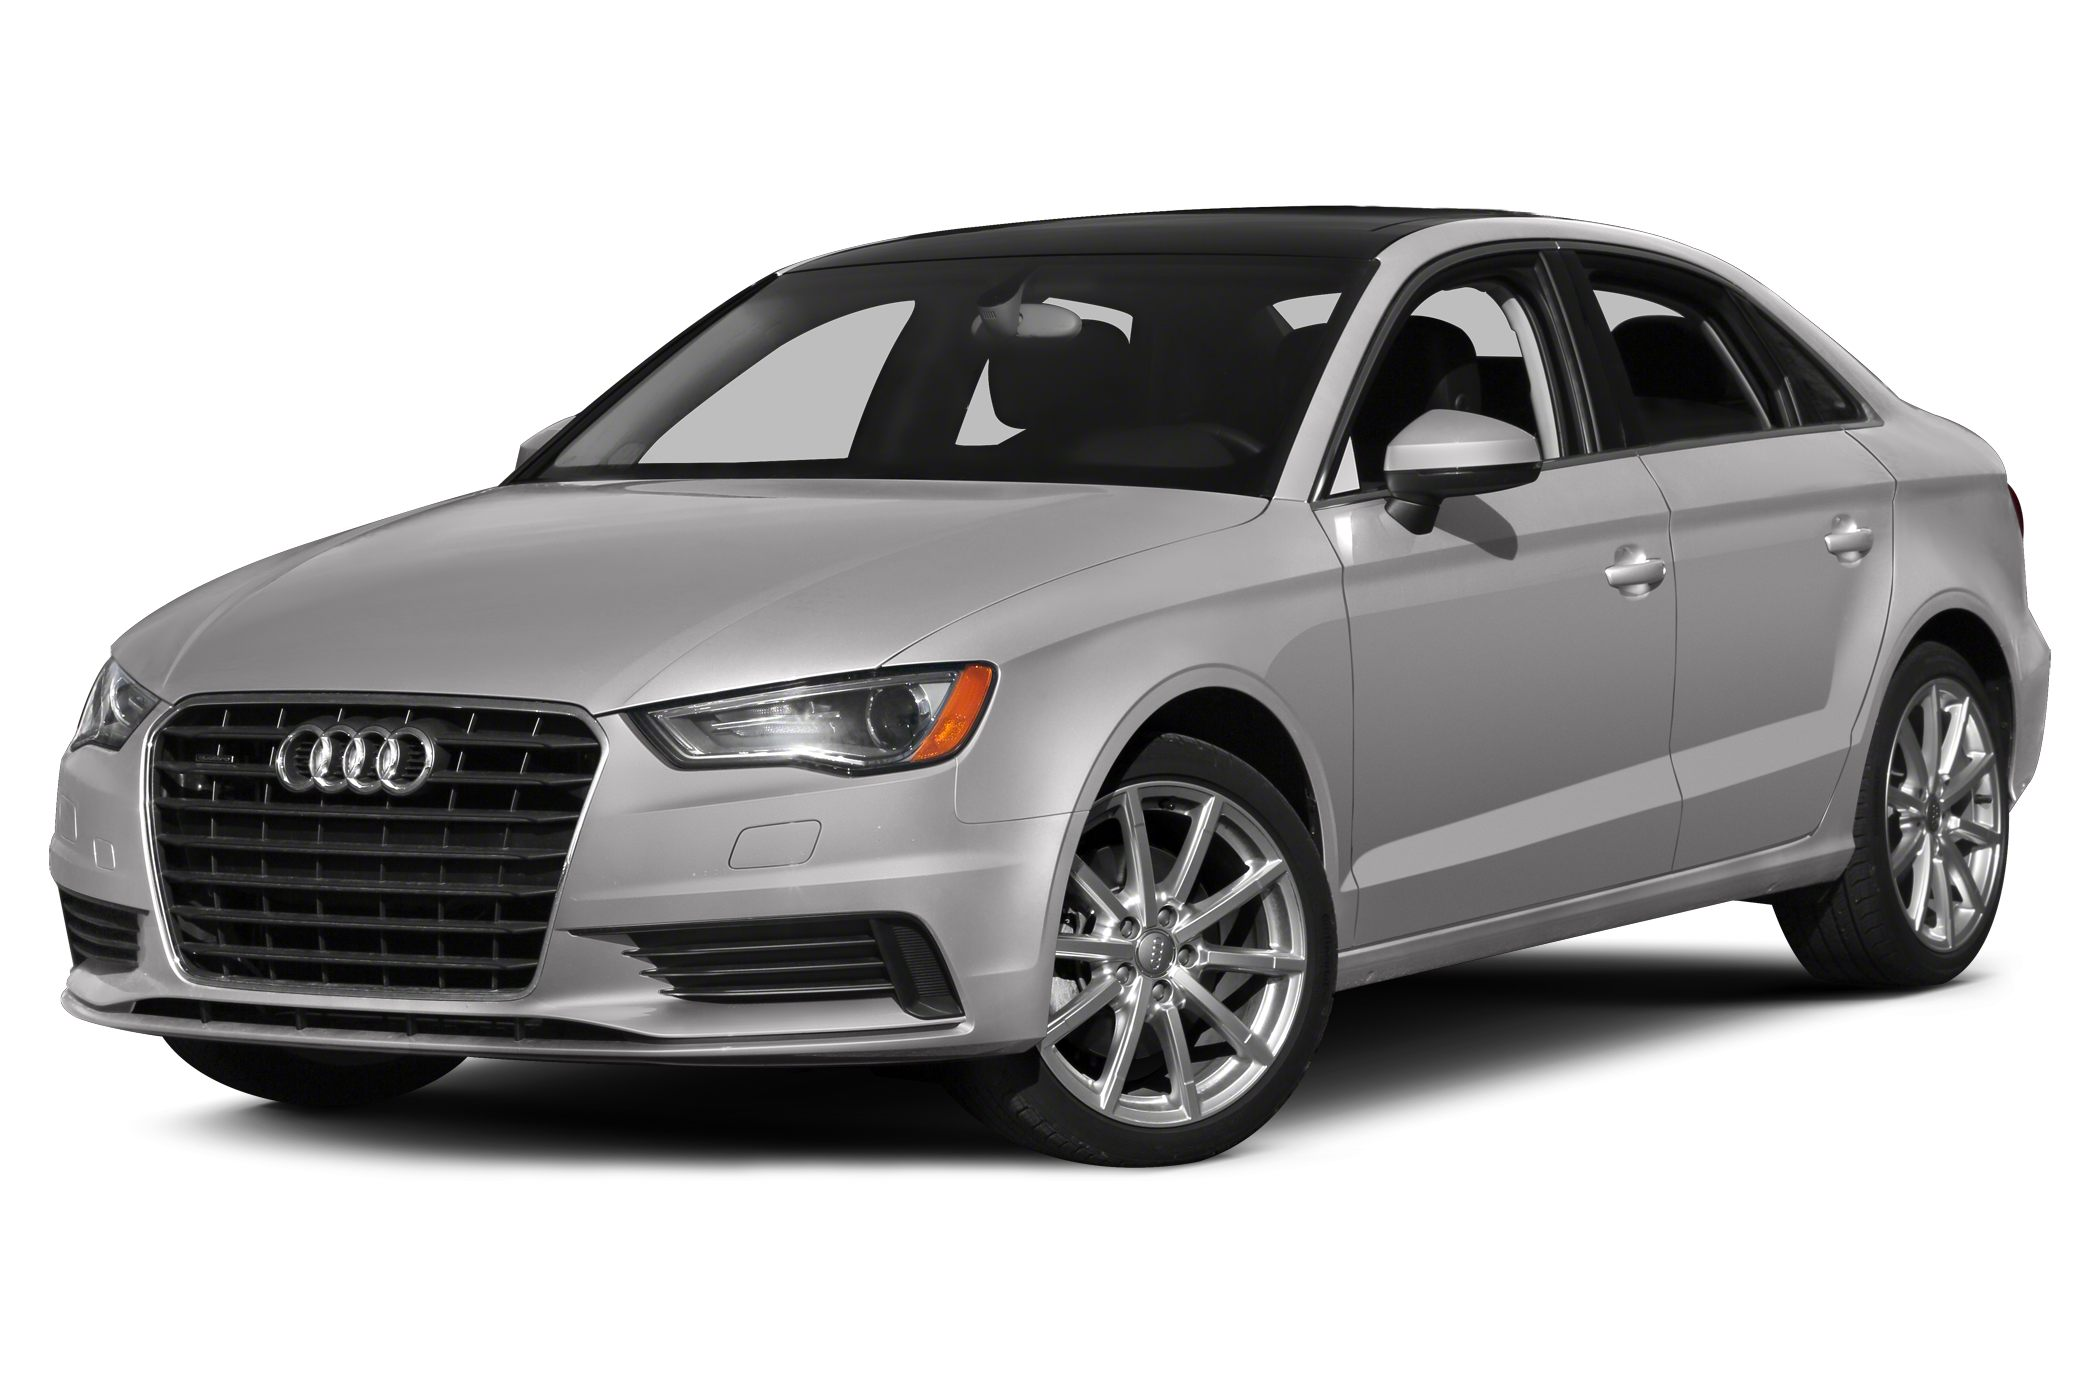 2015 Audi A3 20T quattro Premium WE SELL OUR VEHICLES AT WHOLESALE PRICES AND STAND BEHIND OUR CA